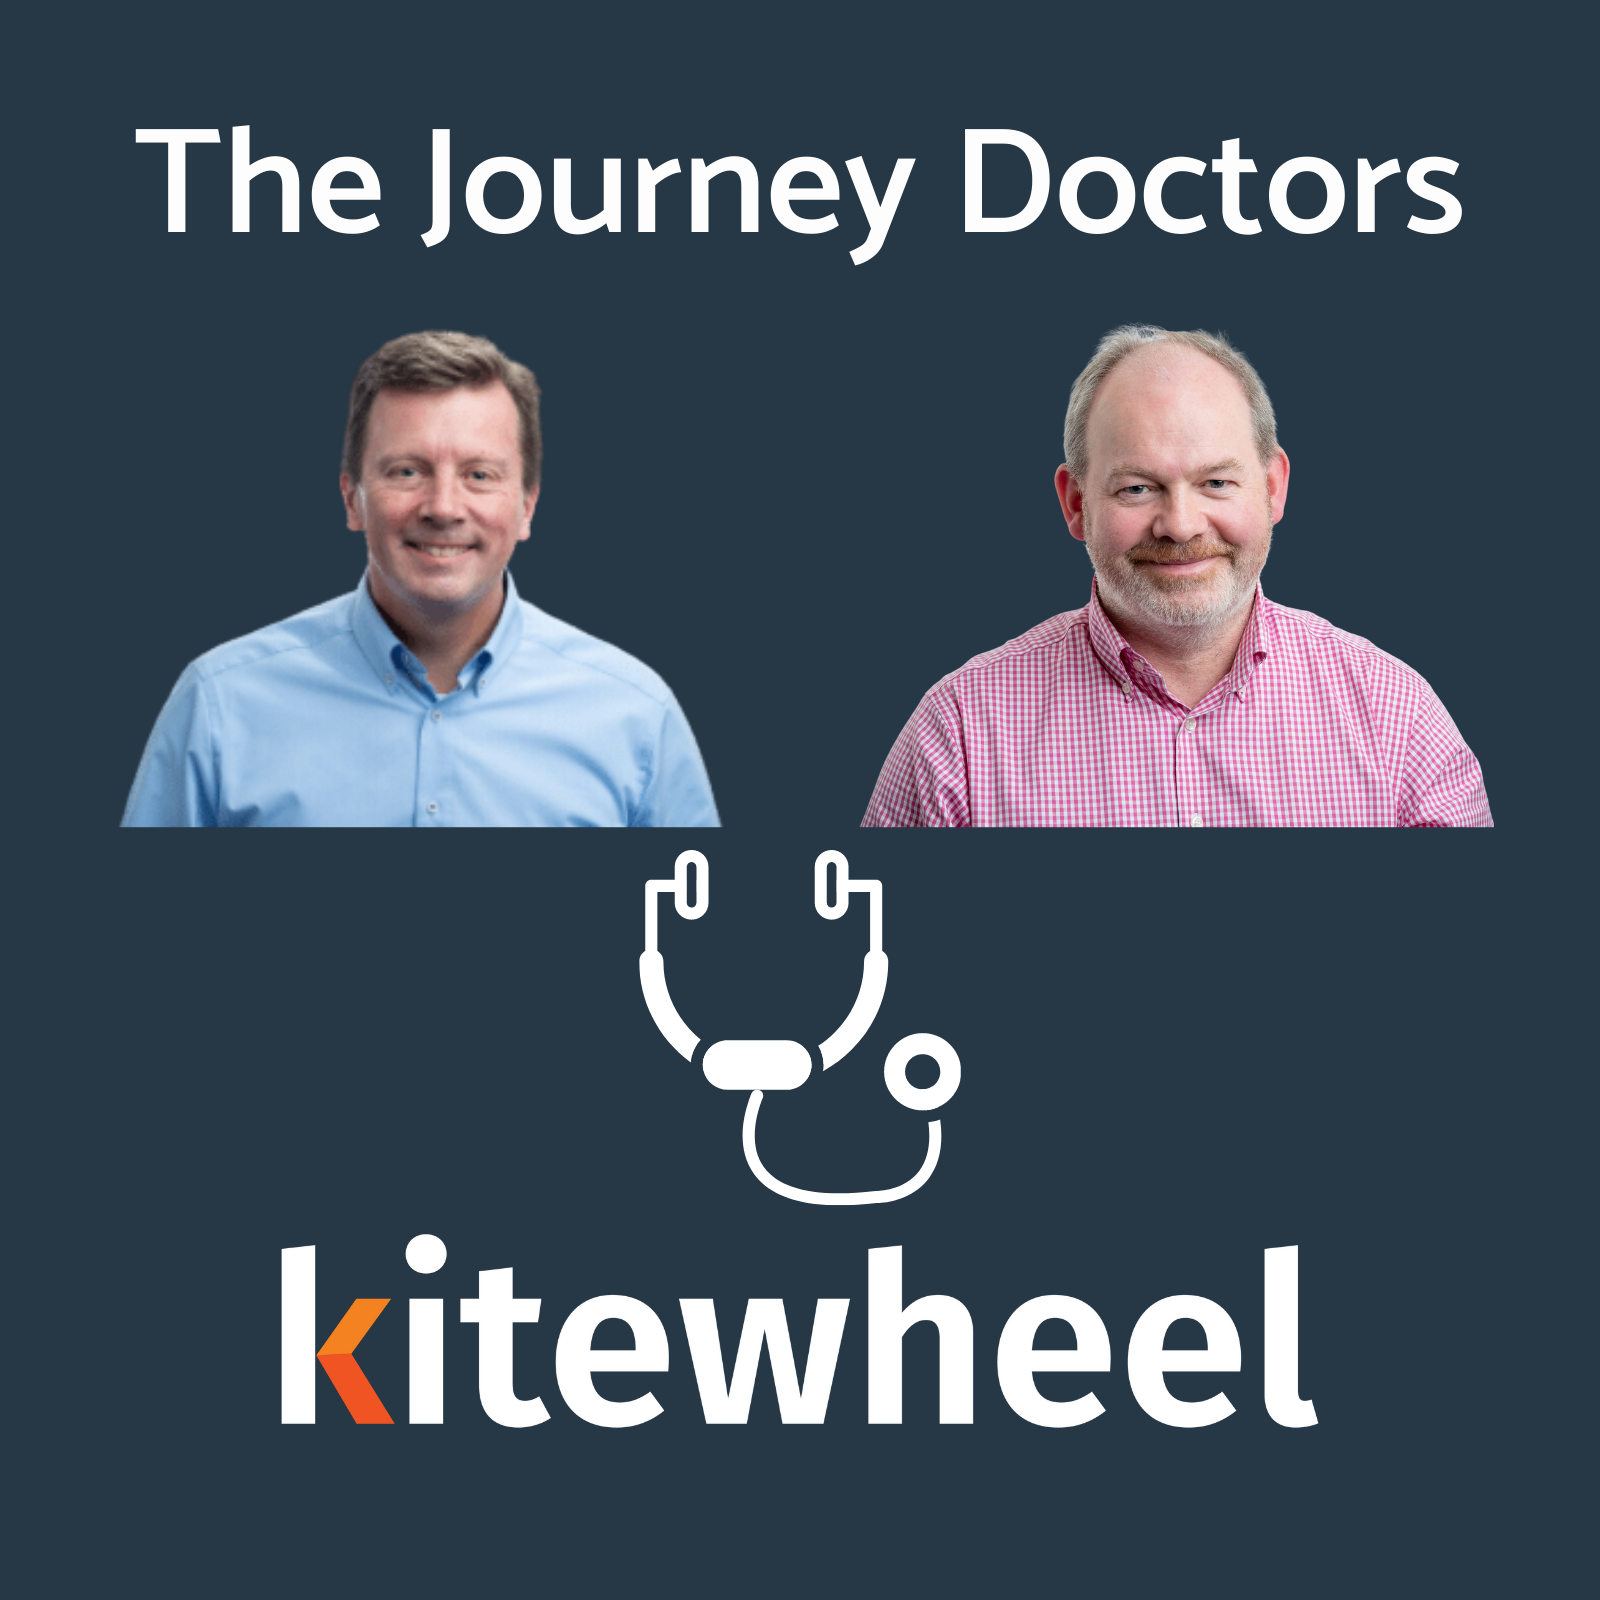 Remote And Digital Treatment: Just What The Doctor Ordered